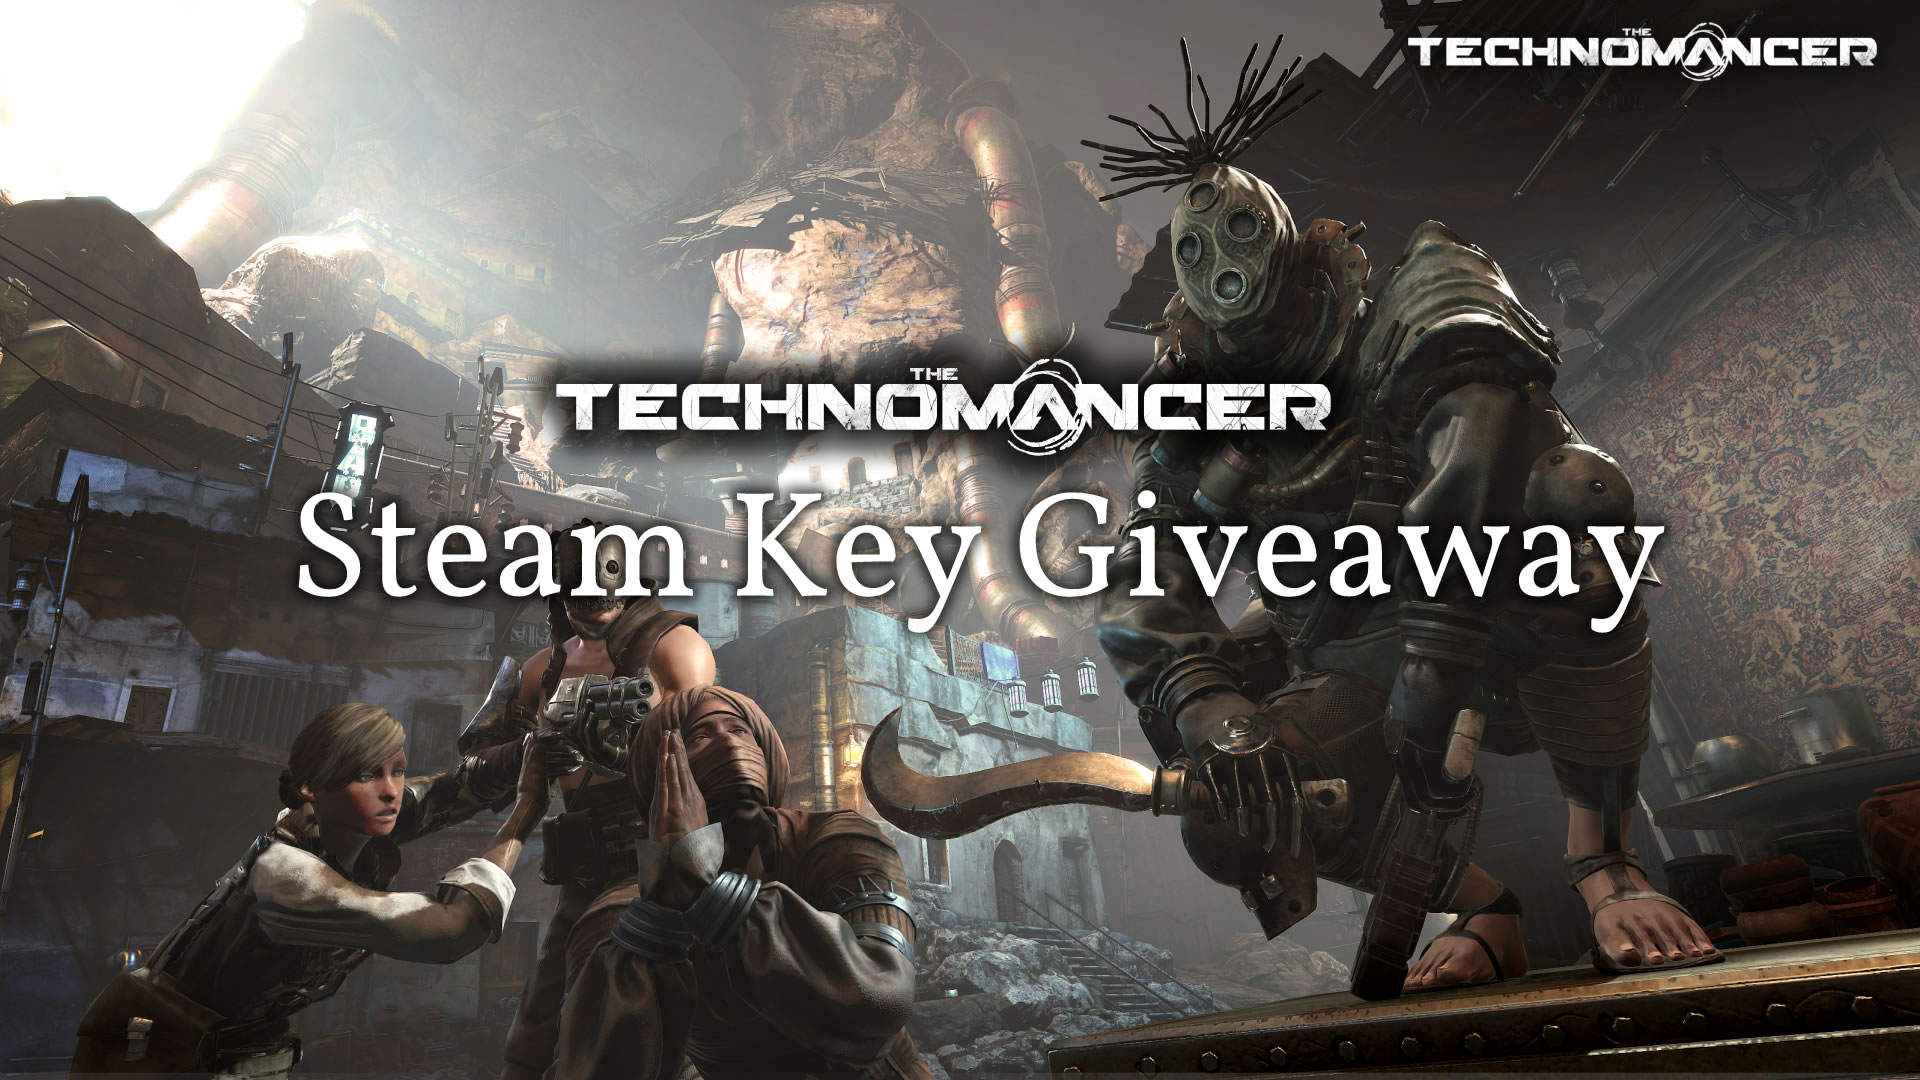 The Technomancer Steam Key Giveaway